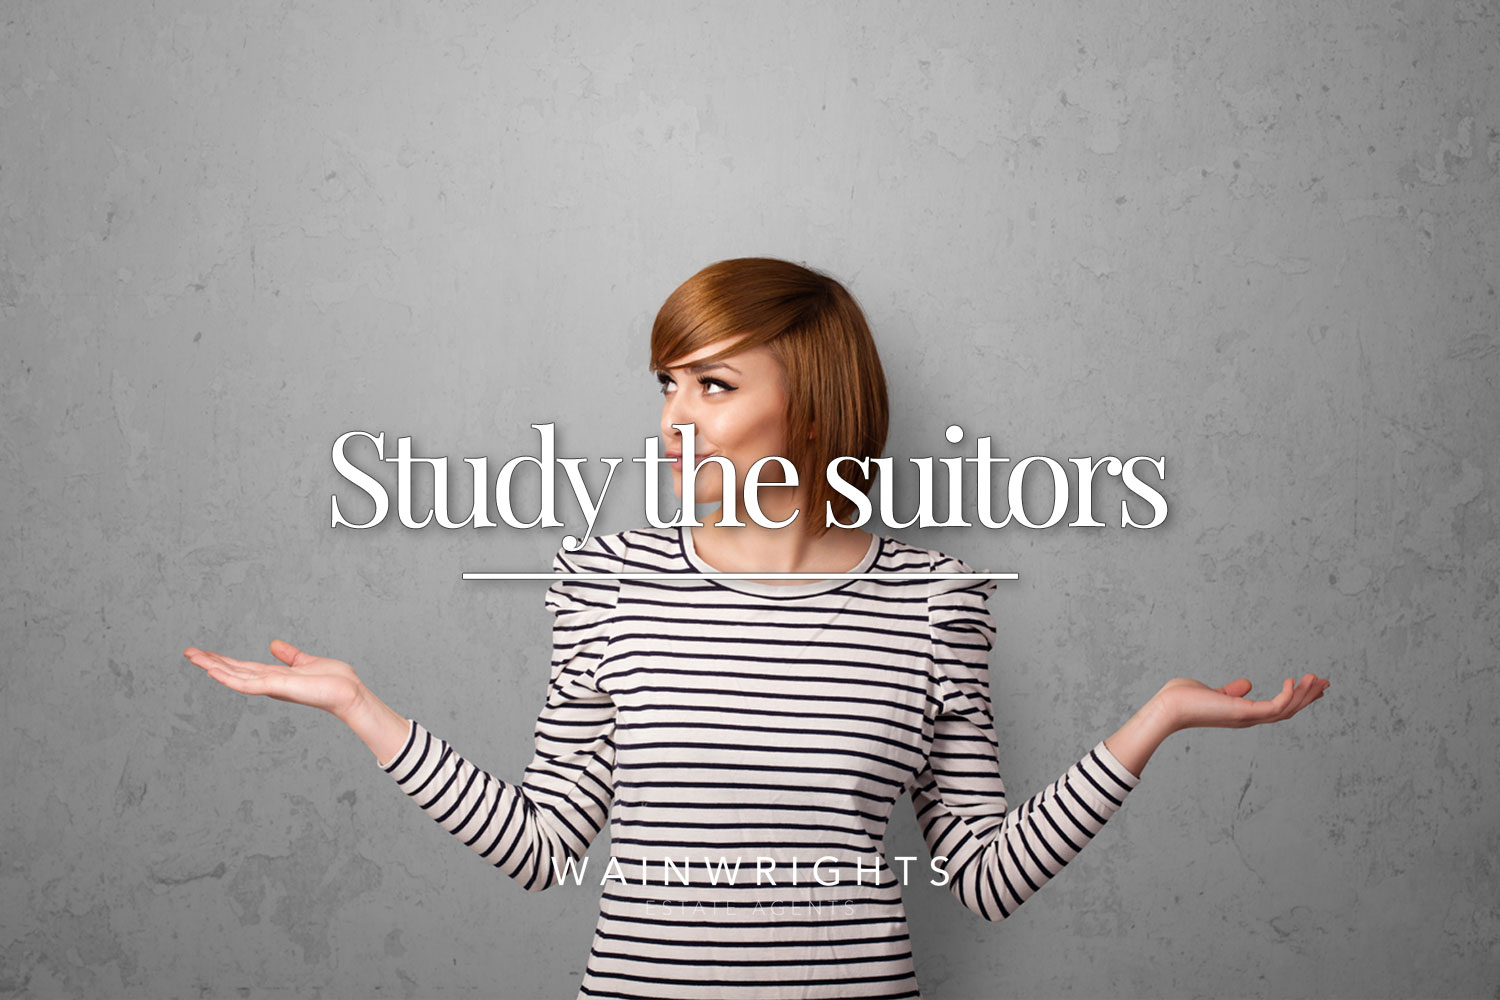 Study-the-suitors-